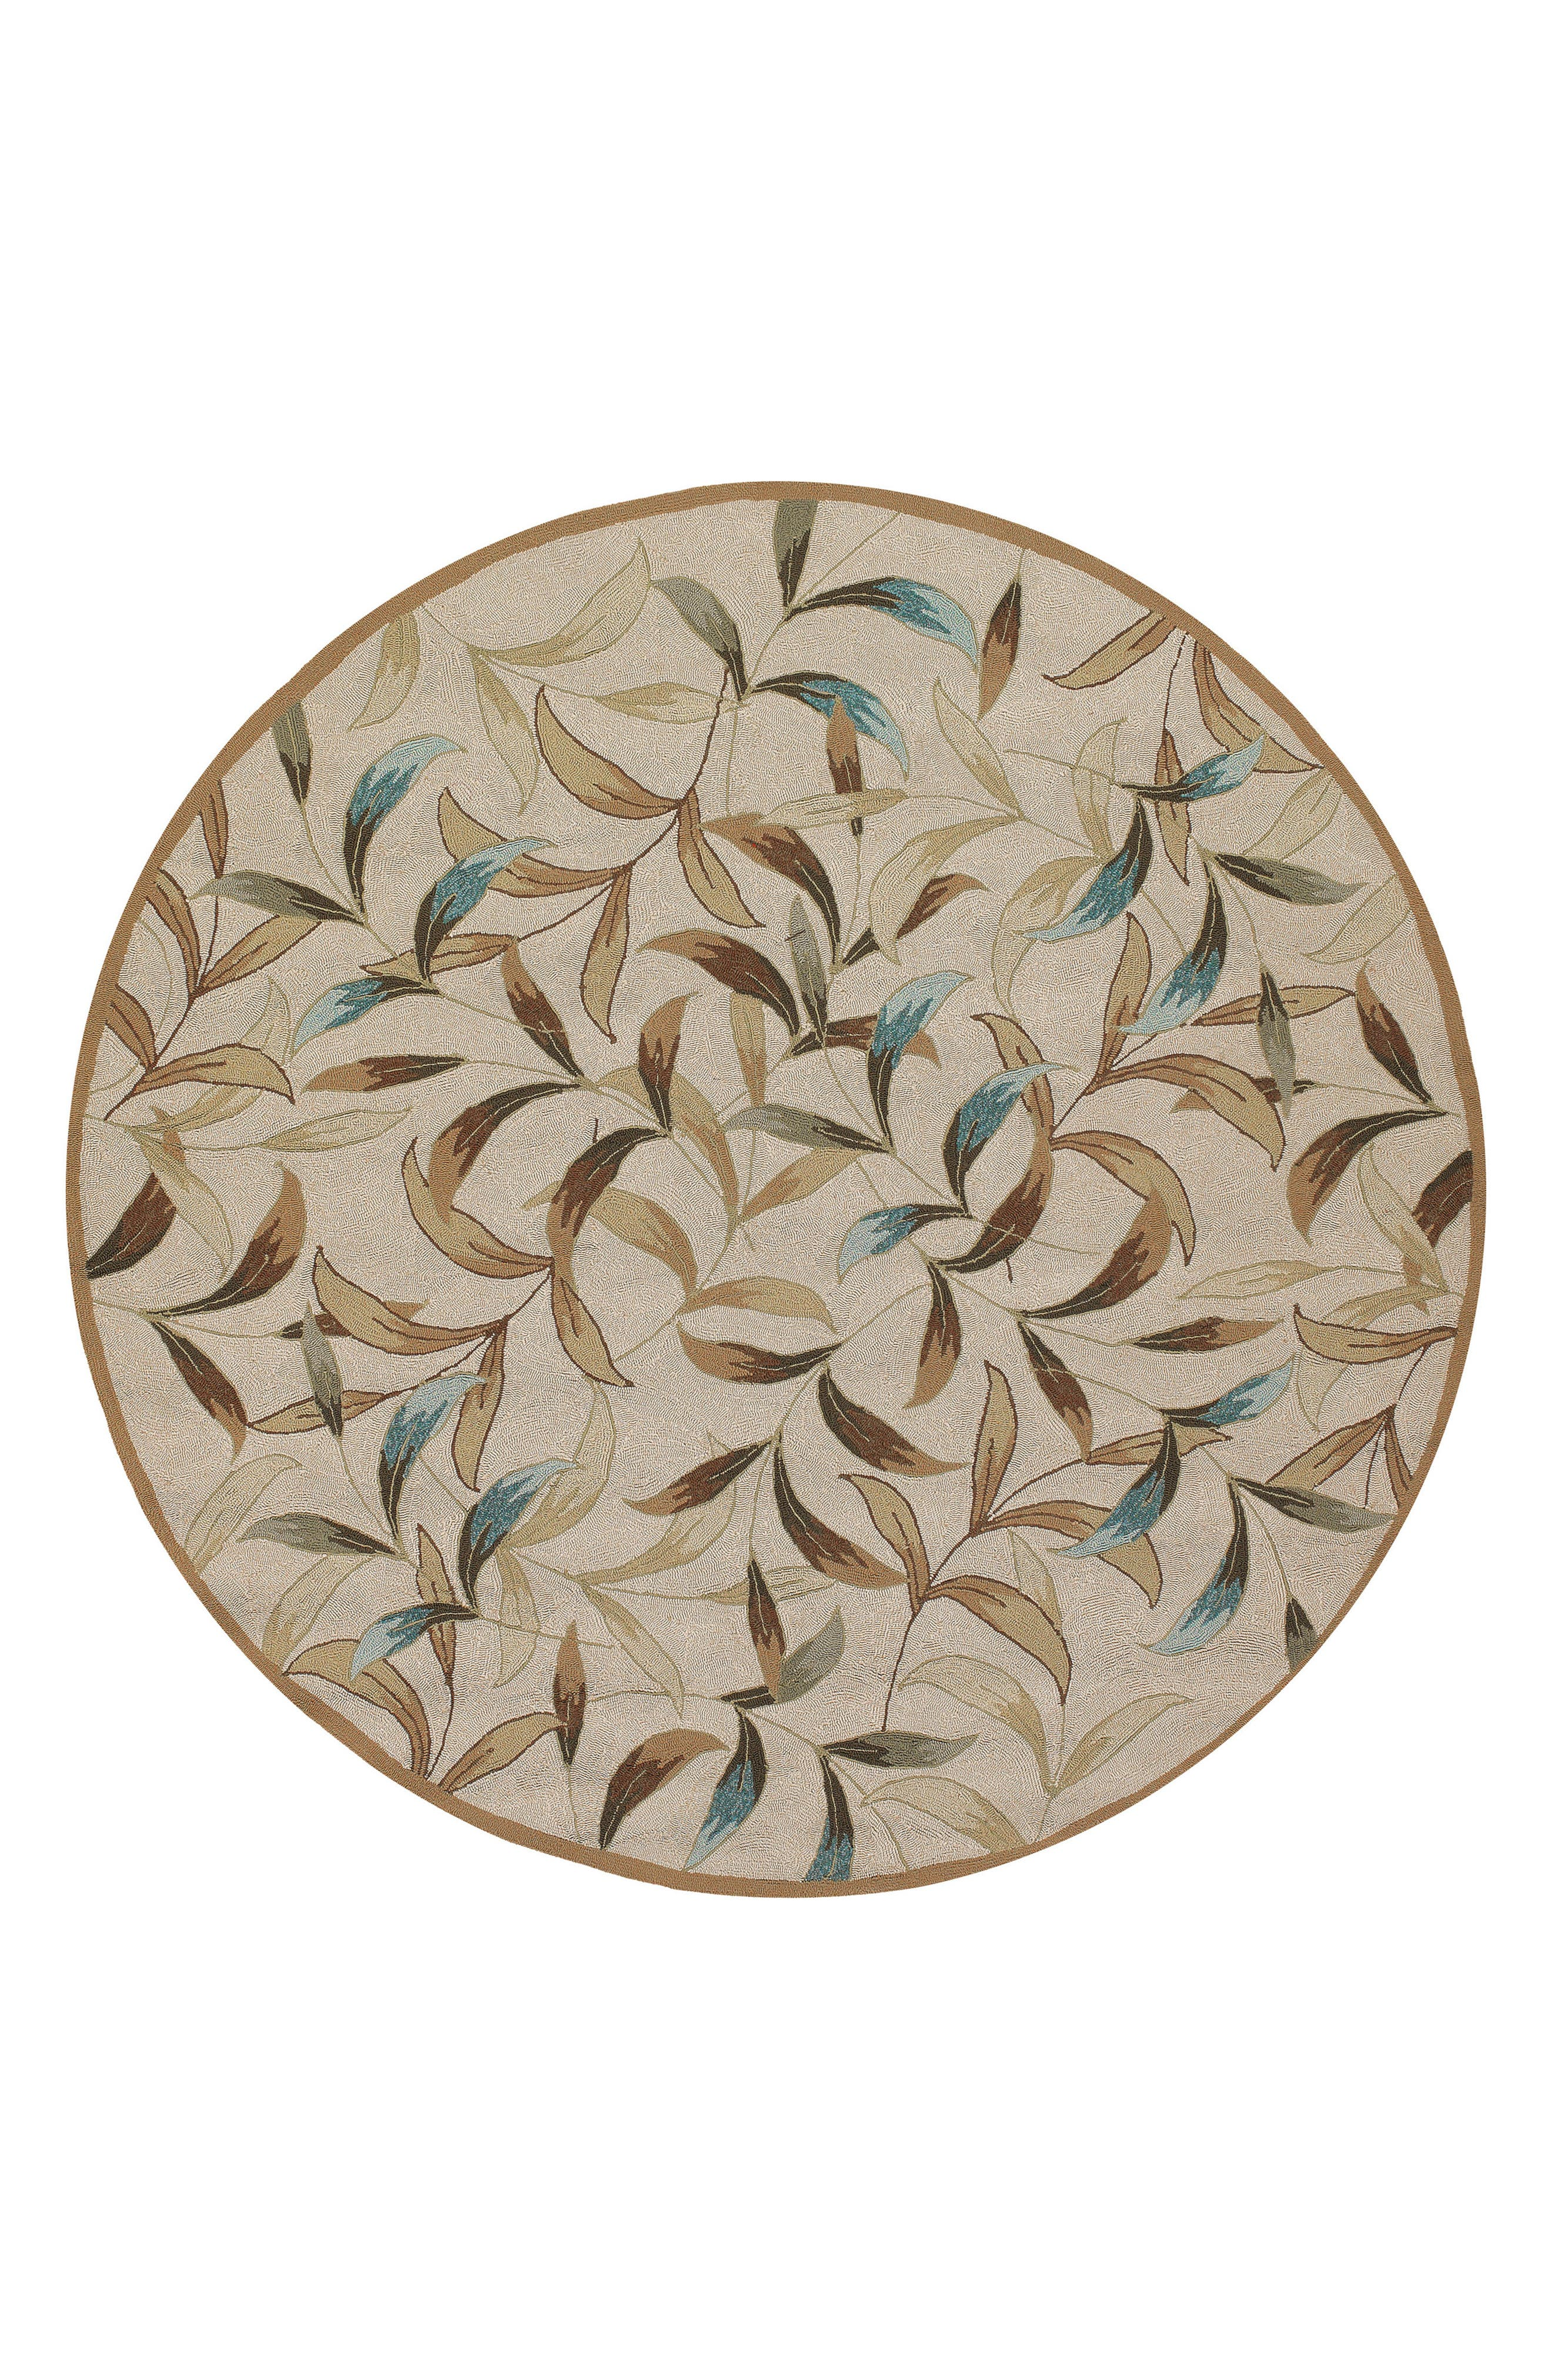 Spring Vista Indoor/Outdoor Round Rug,                             Main thumbnail 1, color,                             Natural/ Blue